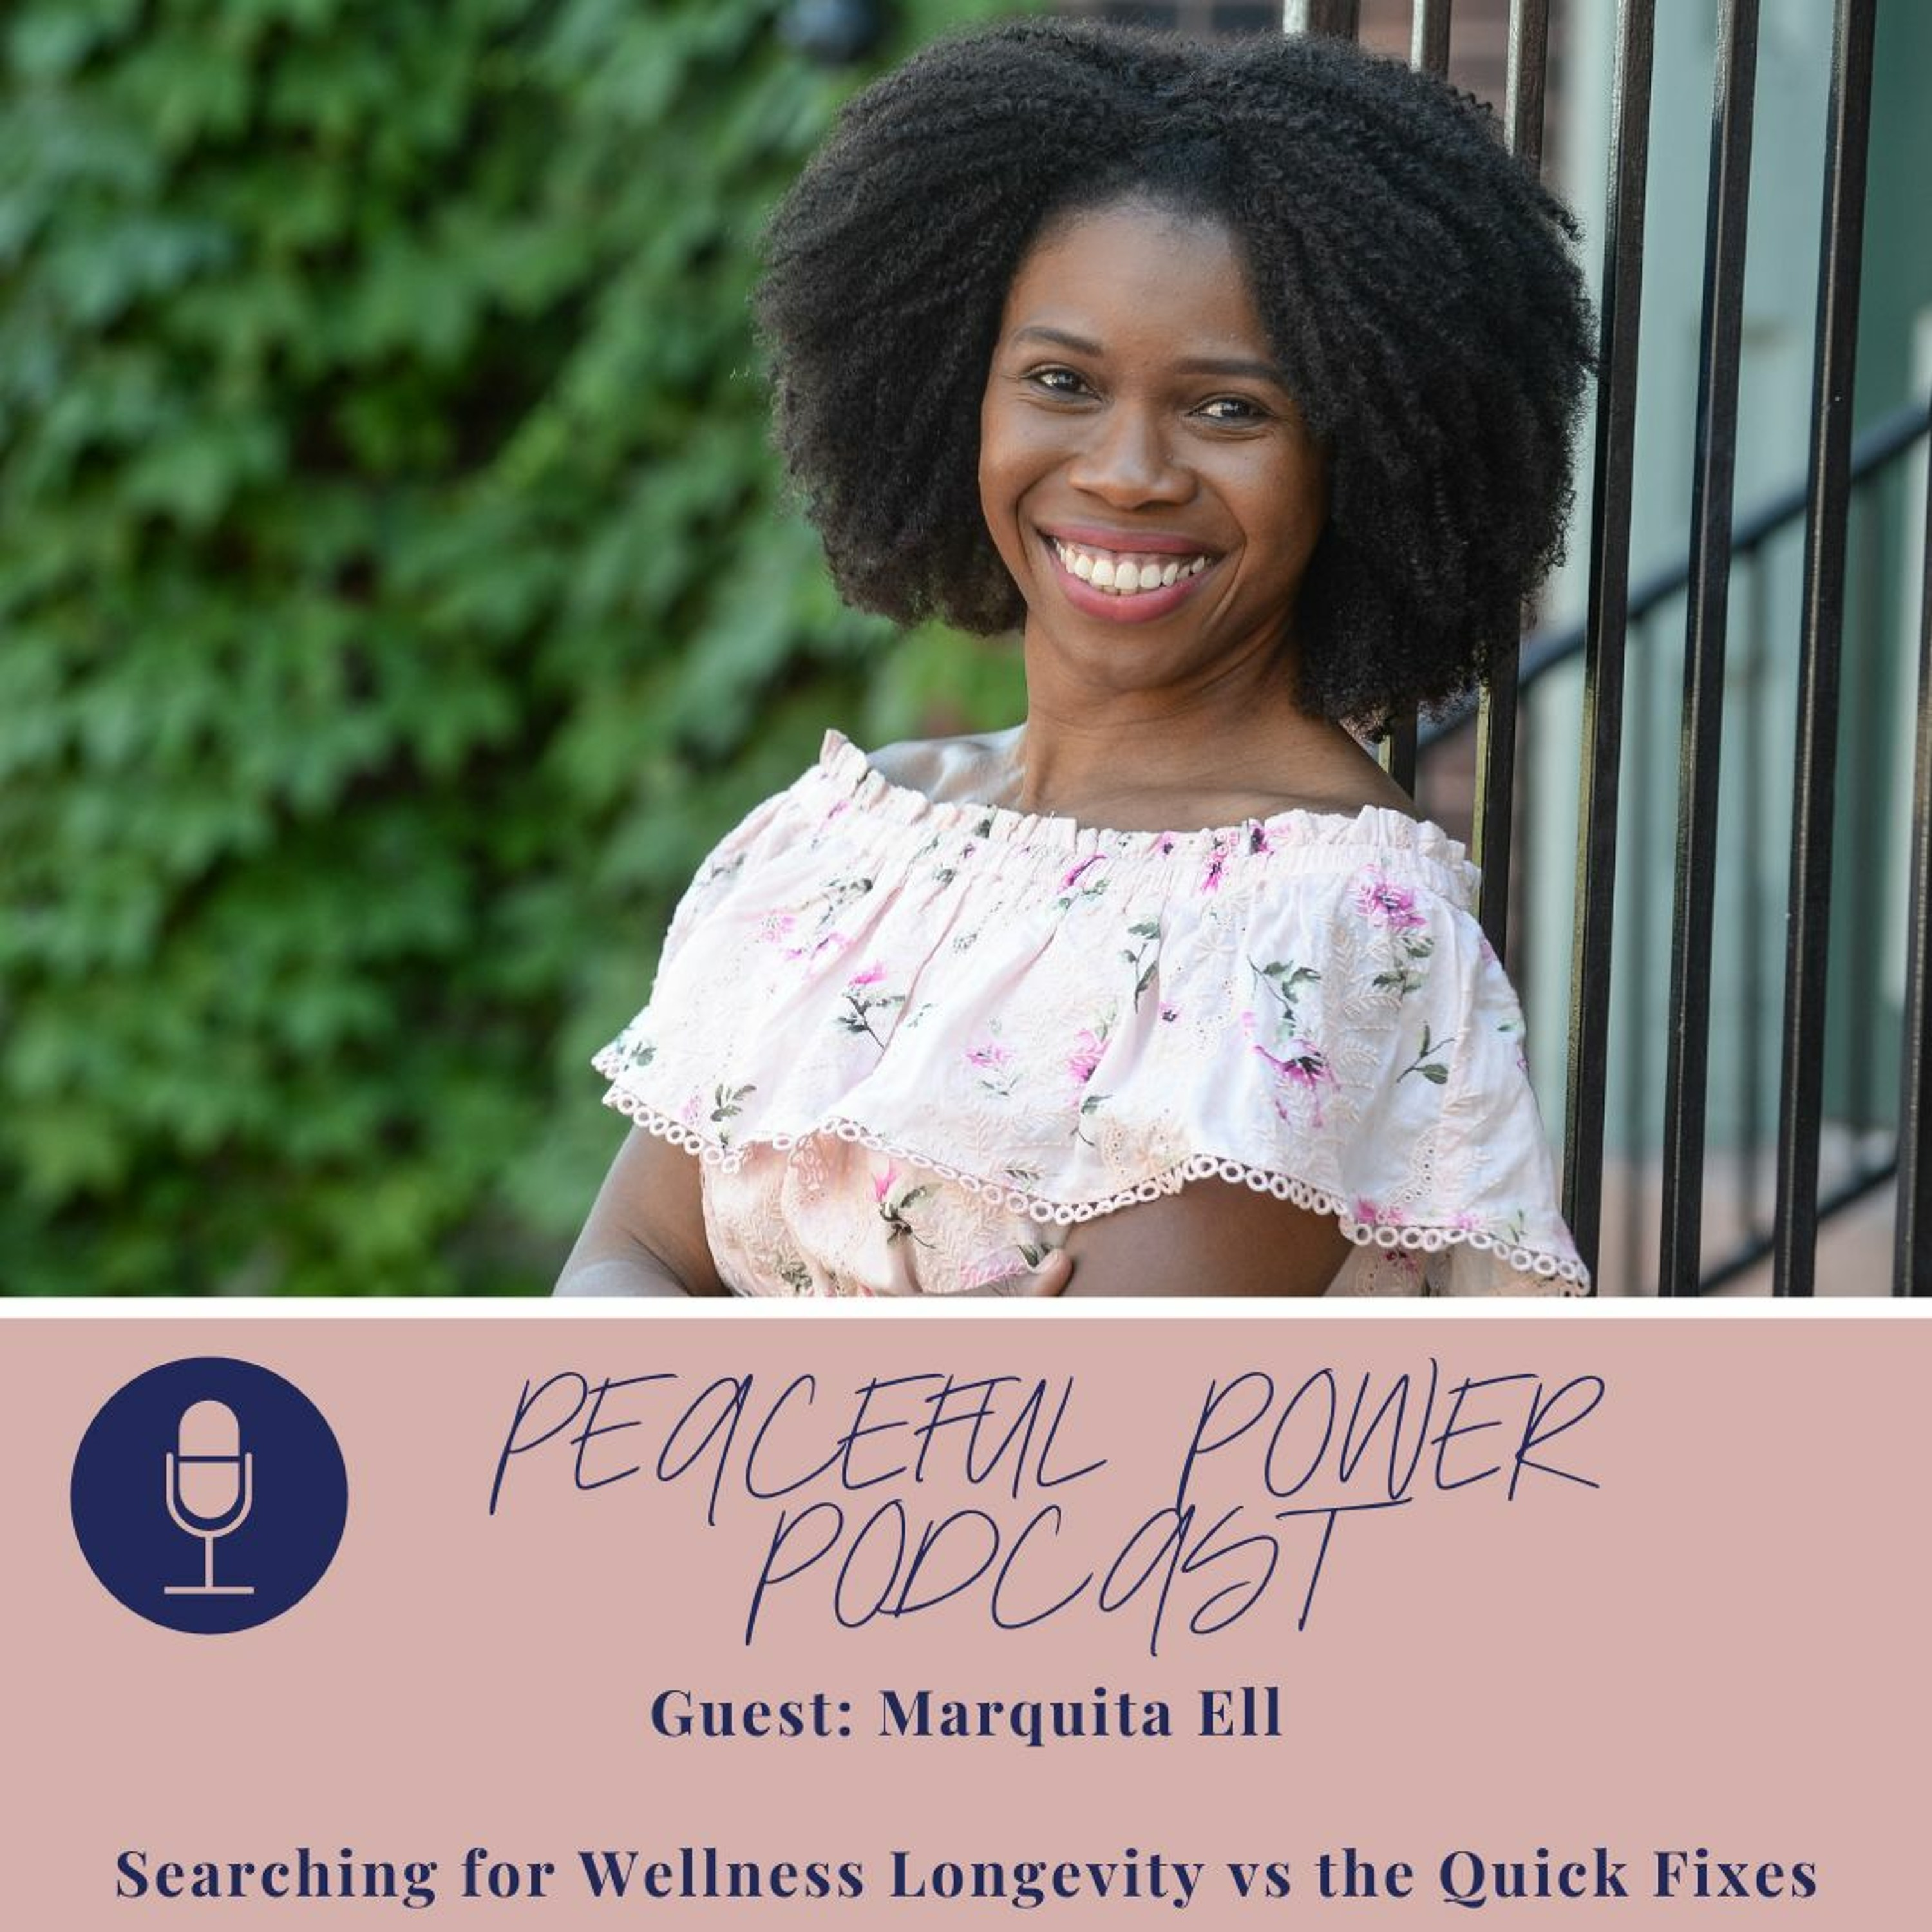 Marquita Ell on Searching for Wellness Longevity vs the Quick Fixes